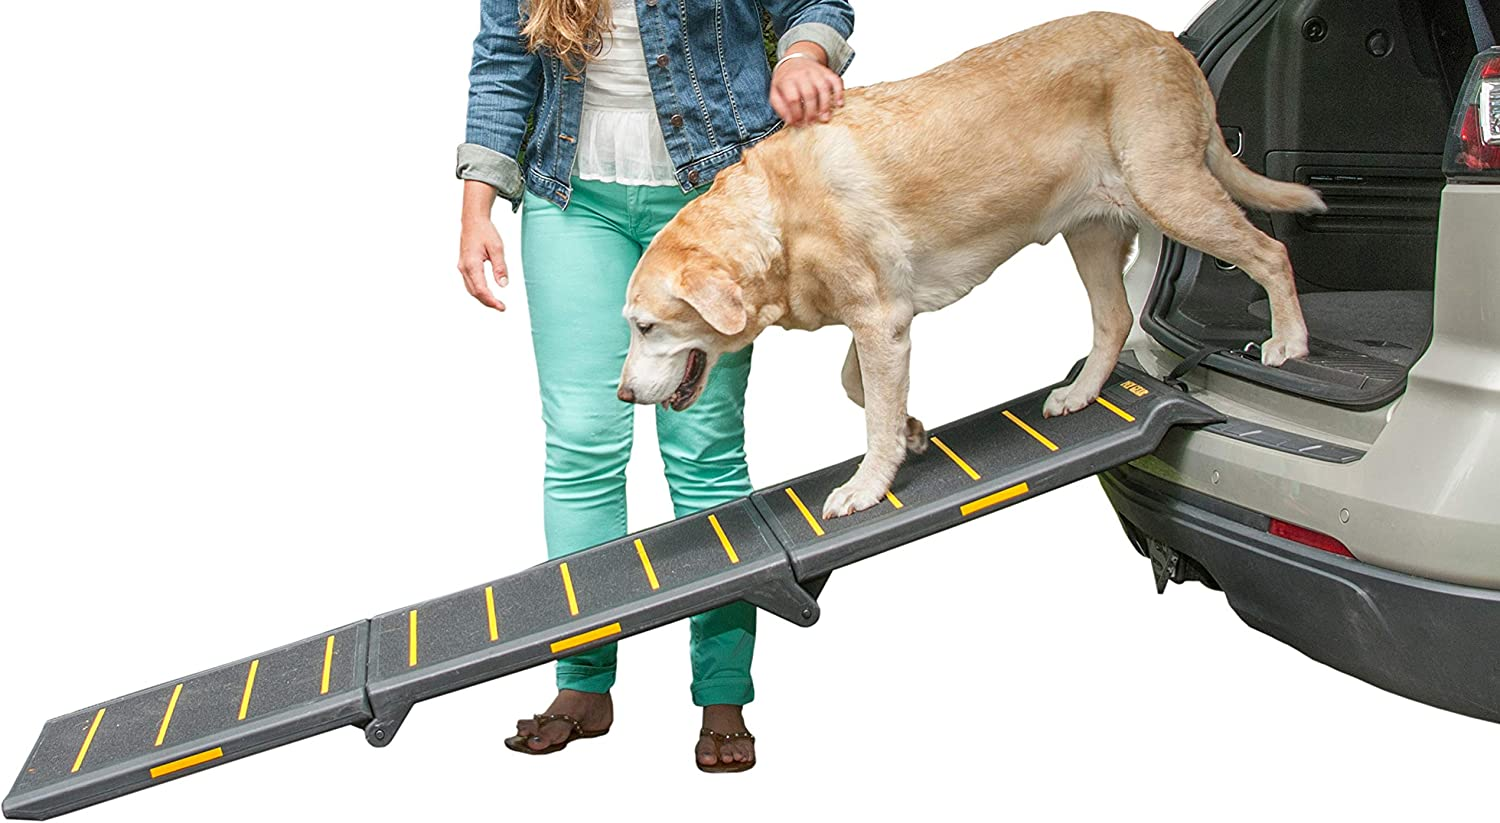 Max Super-cheap 83% OFF Pet Gear Tri-Fold Ramp 71 Long Extra Wide Portable Inch